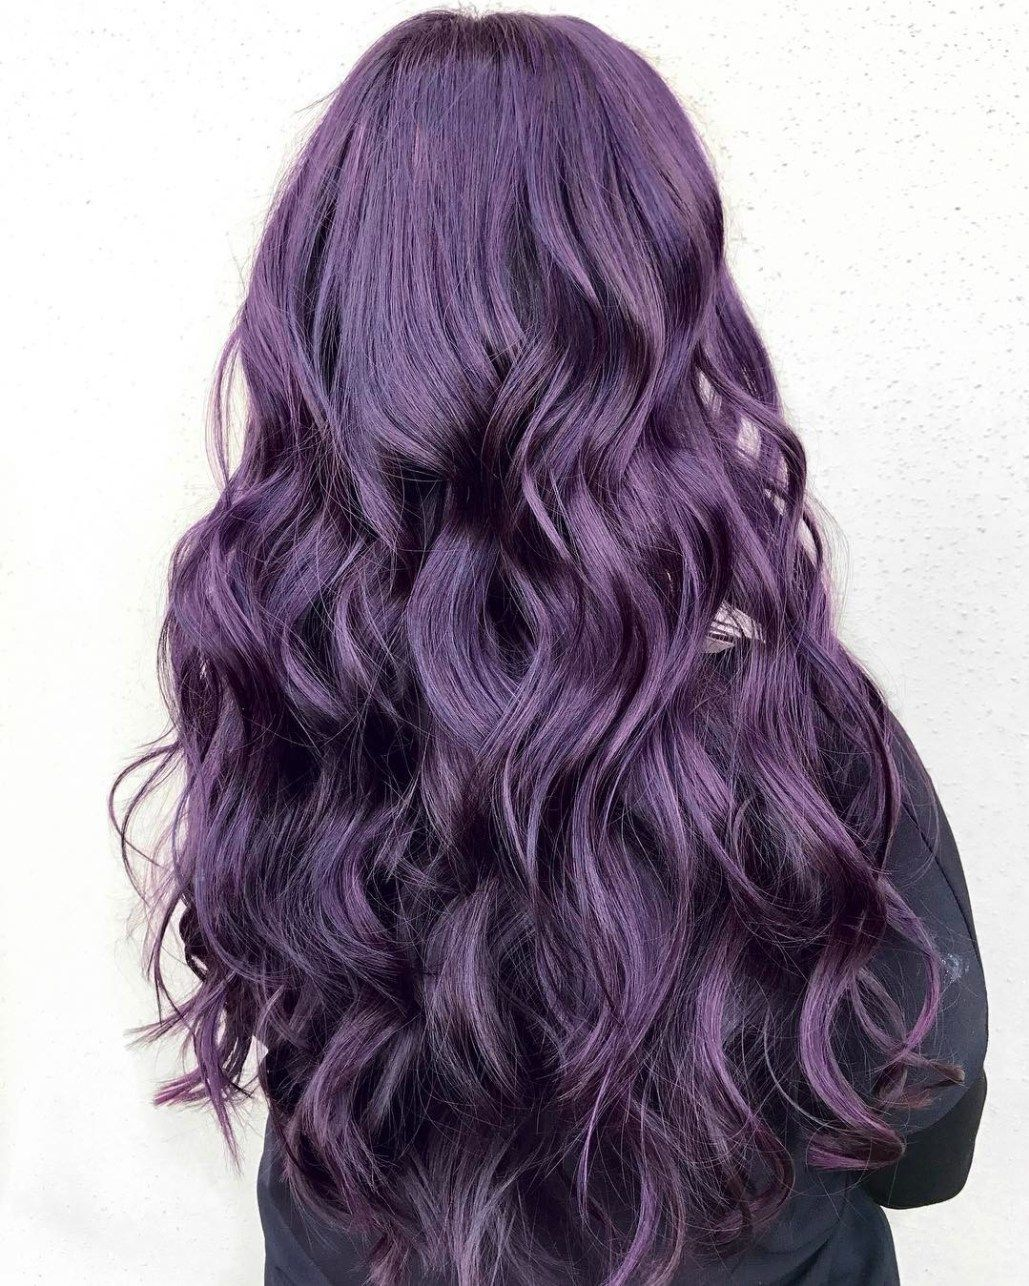 63 Purple Hair Color Ideas To Swoon Over Violet Purple Hair Dye Tips: 20 Plum Hair Color Ideas For Your Next Makeover